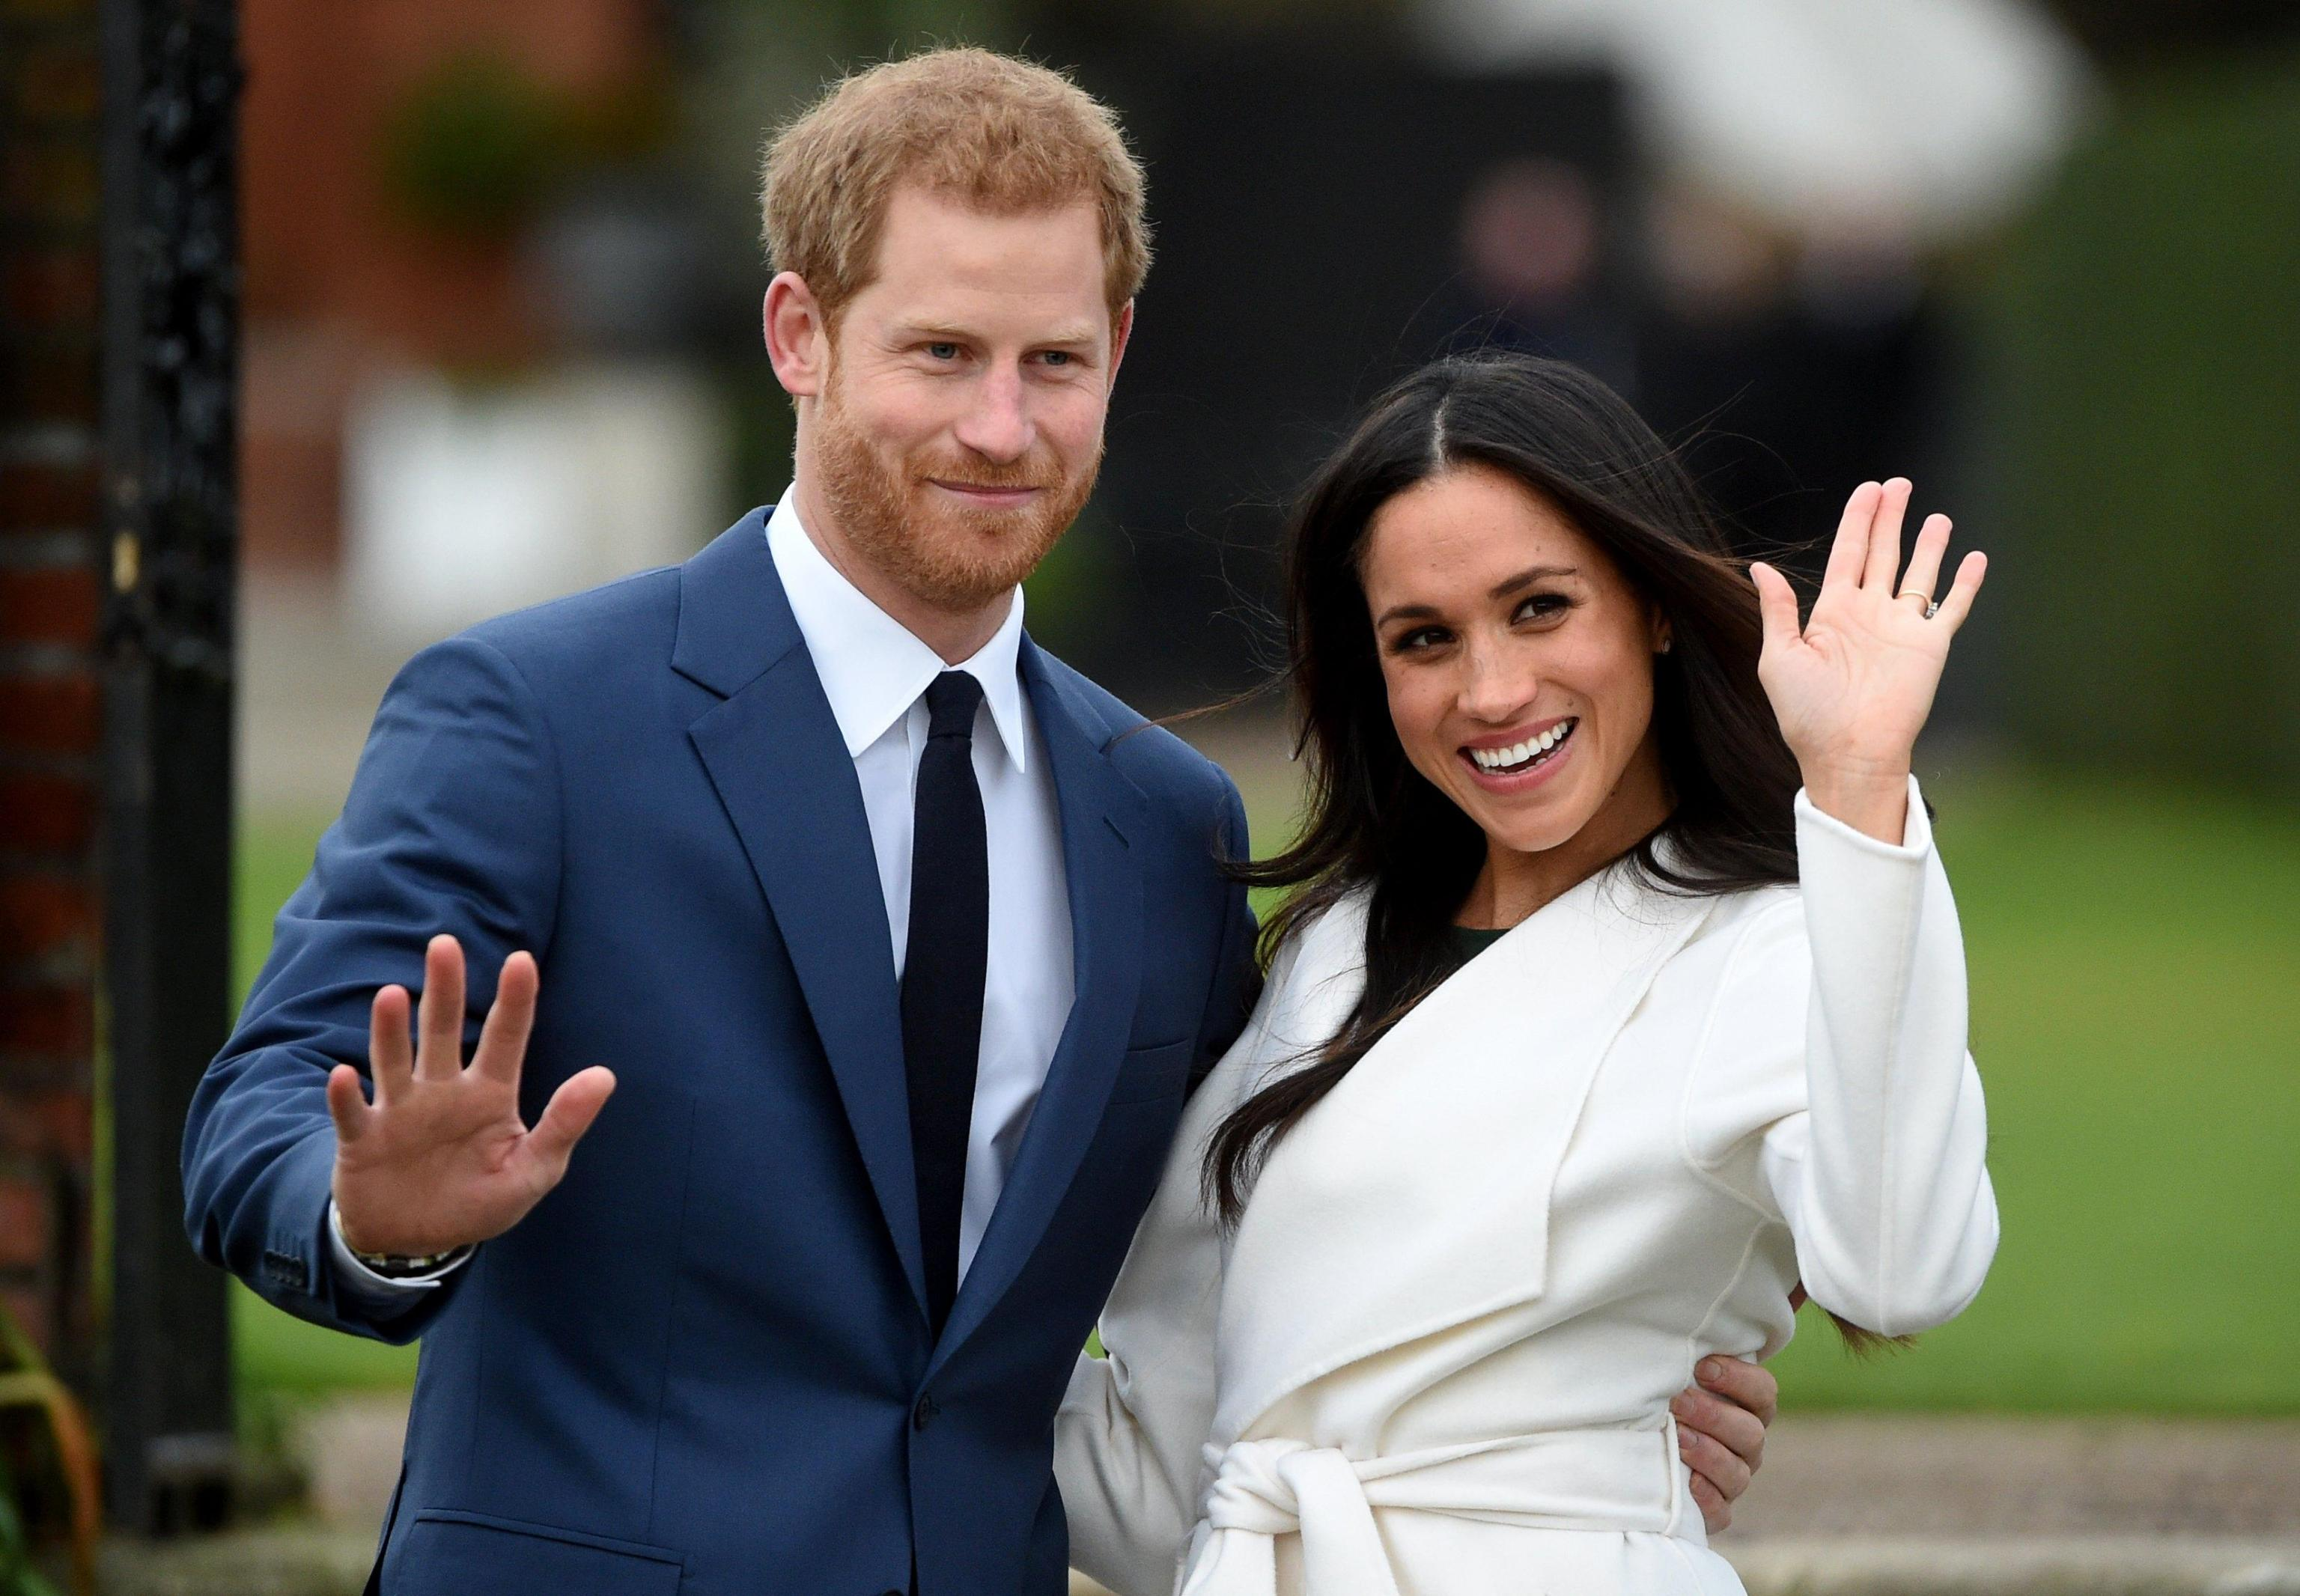 L'anello di fidanzamento di Meghan Markle: il diamante regalatole da Harry era di Lady Diana